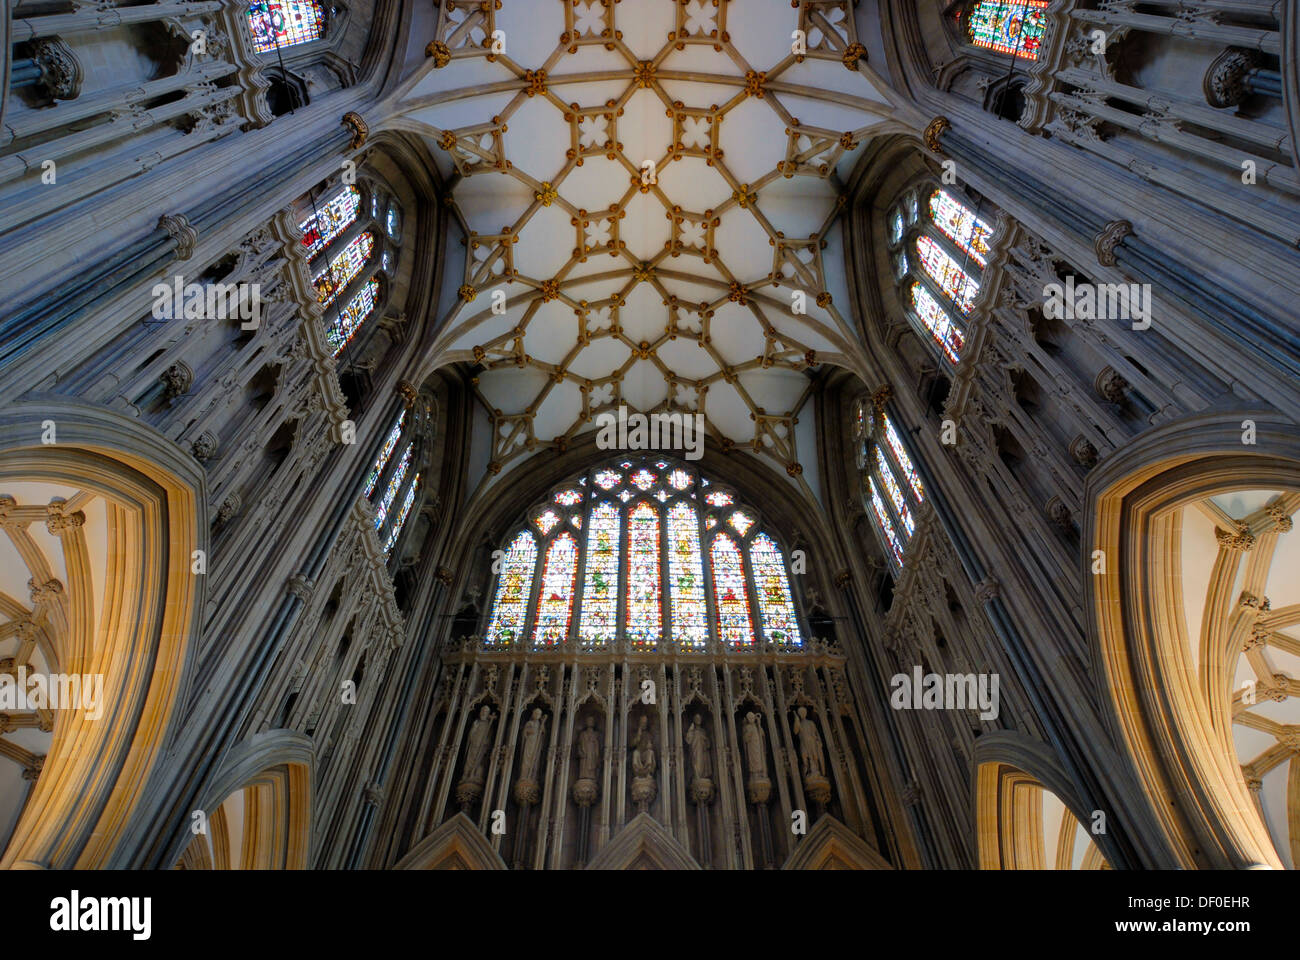 Interior, Wells Cathedral, Wells, Somerset, England, United Kingdom, Europe - Stock Image